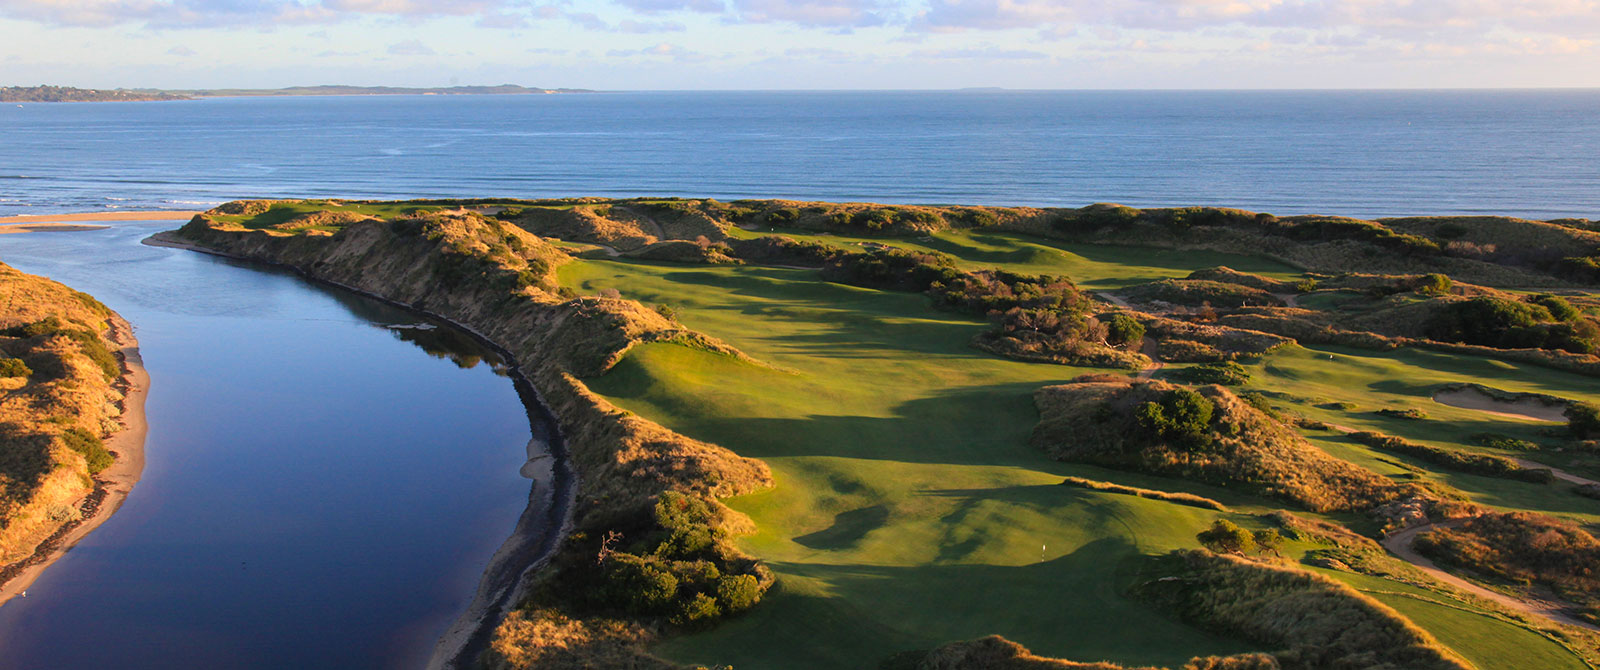 Barnbougle Lost Farm Golf Course - Best Golf Courses in Australia